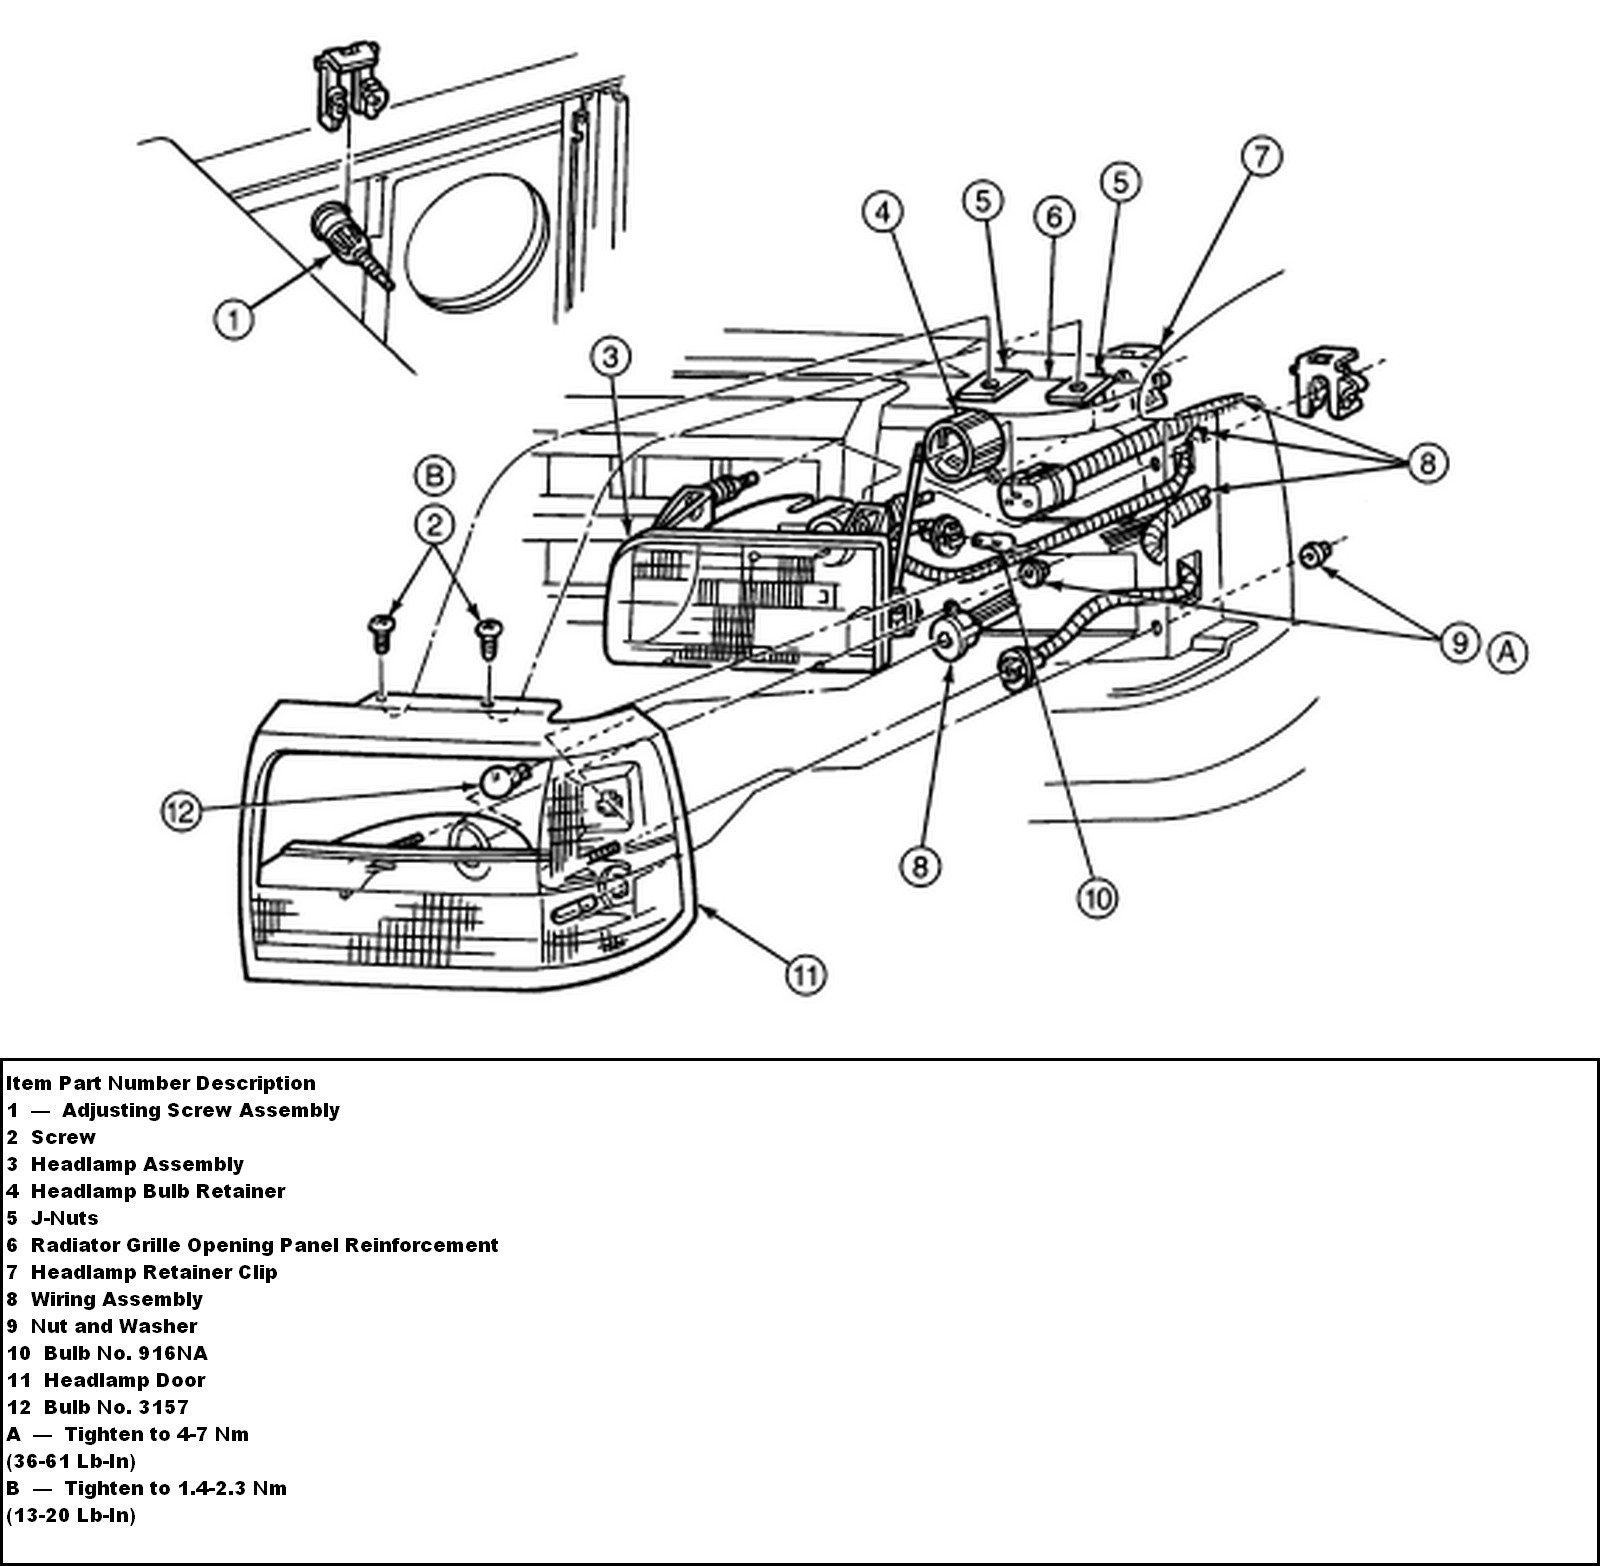 1995 Ford F 150 Cant Figure Out How To Remove The Head Lamp 95 4 9 Engine Diagram Graphic